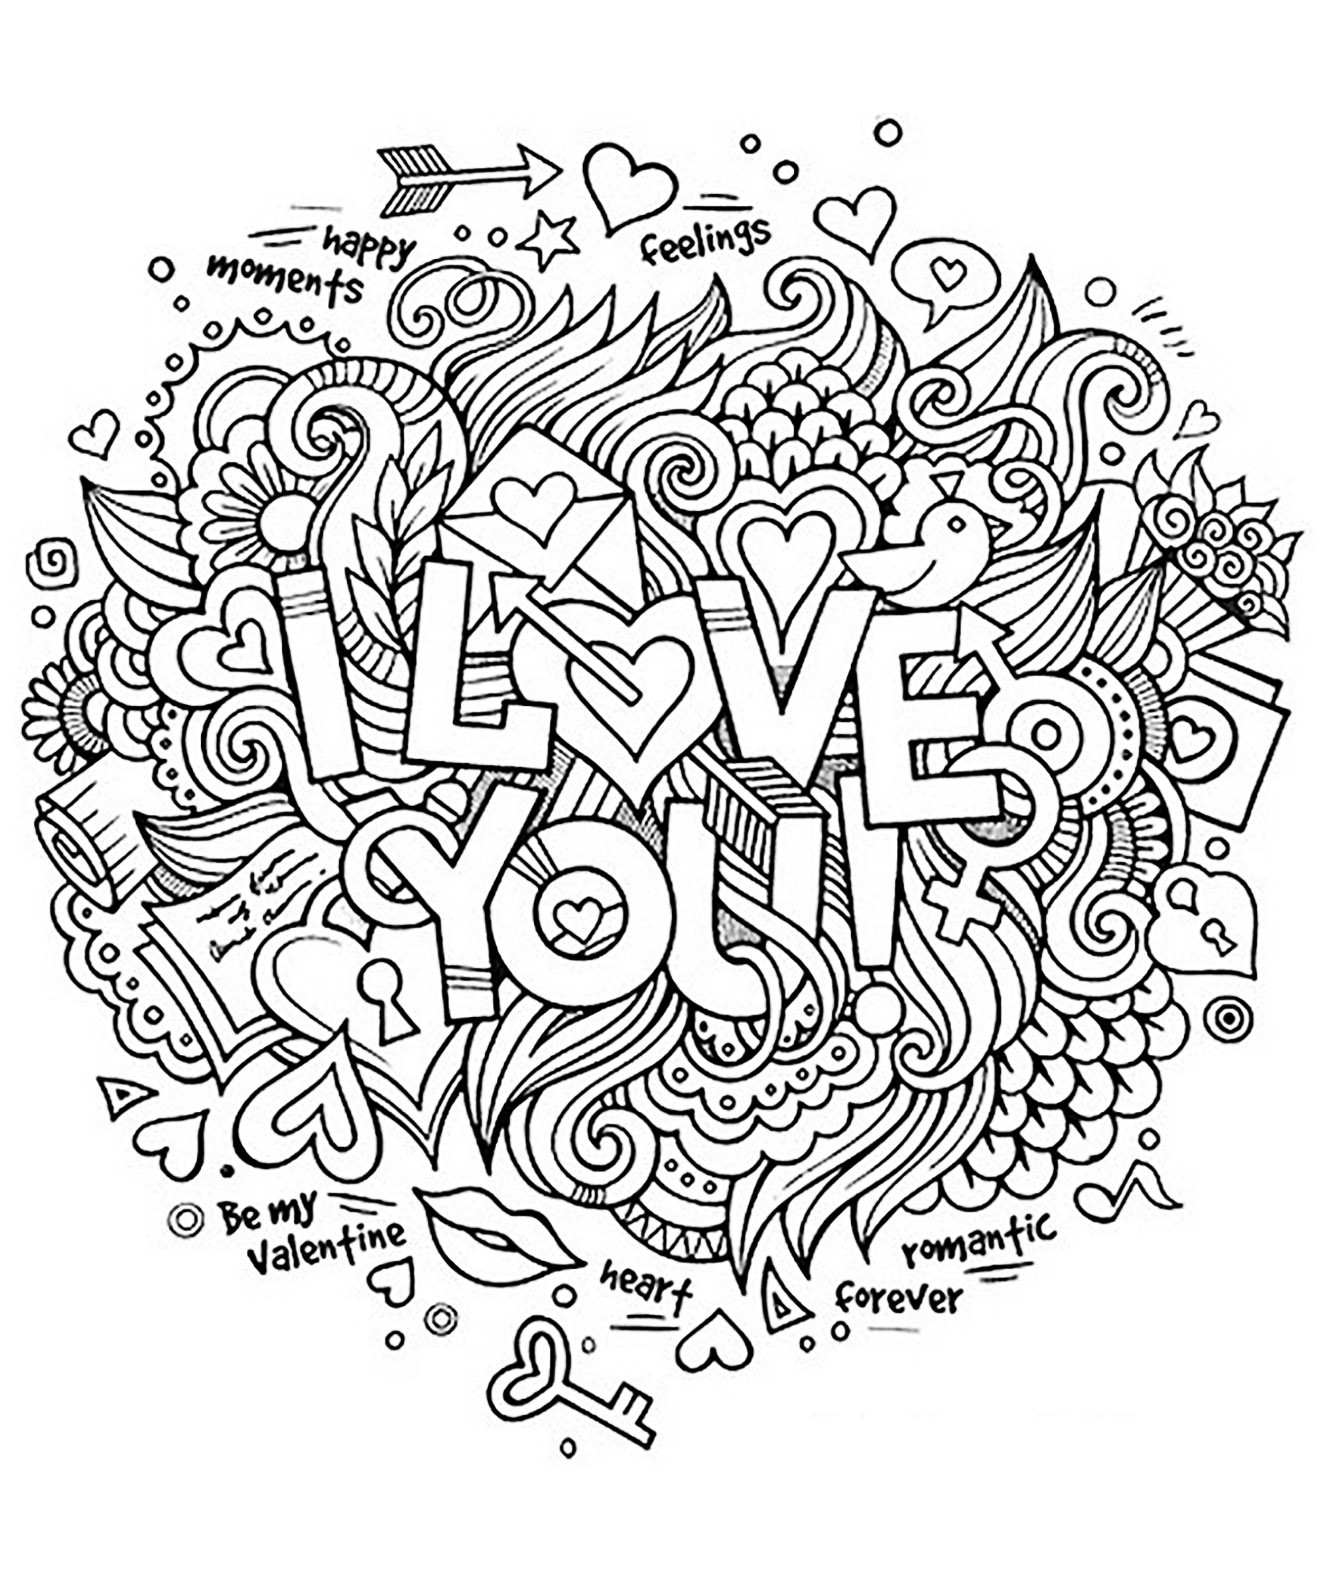 Free Printable I Love You Coloring Pages For Adults  I love you Quotes Adult Coloring Pages